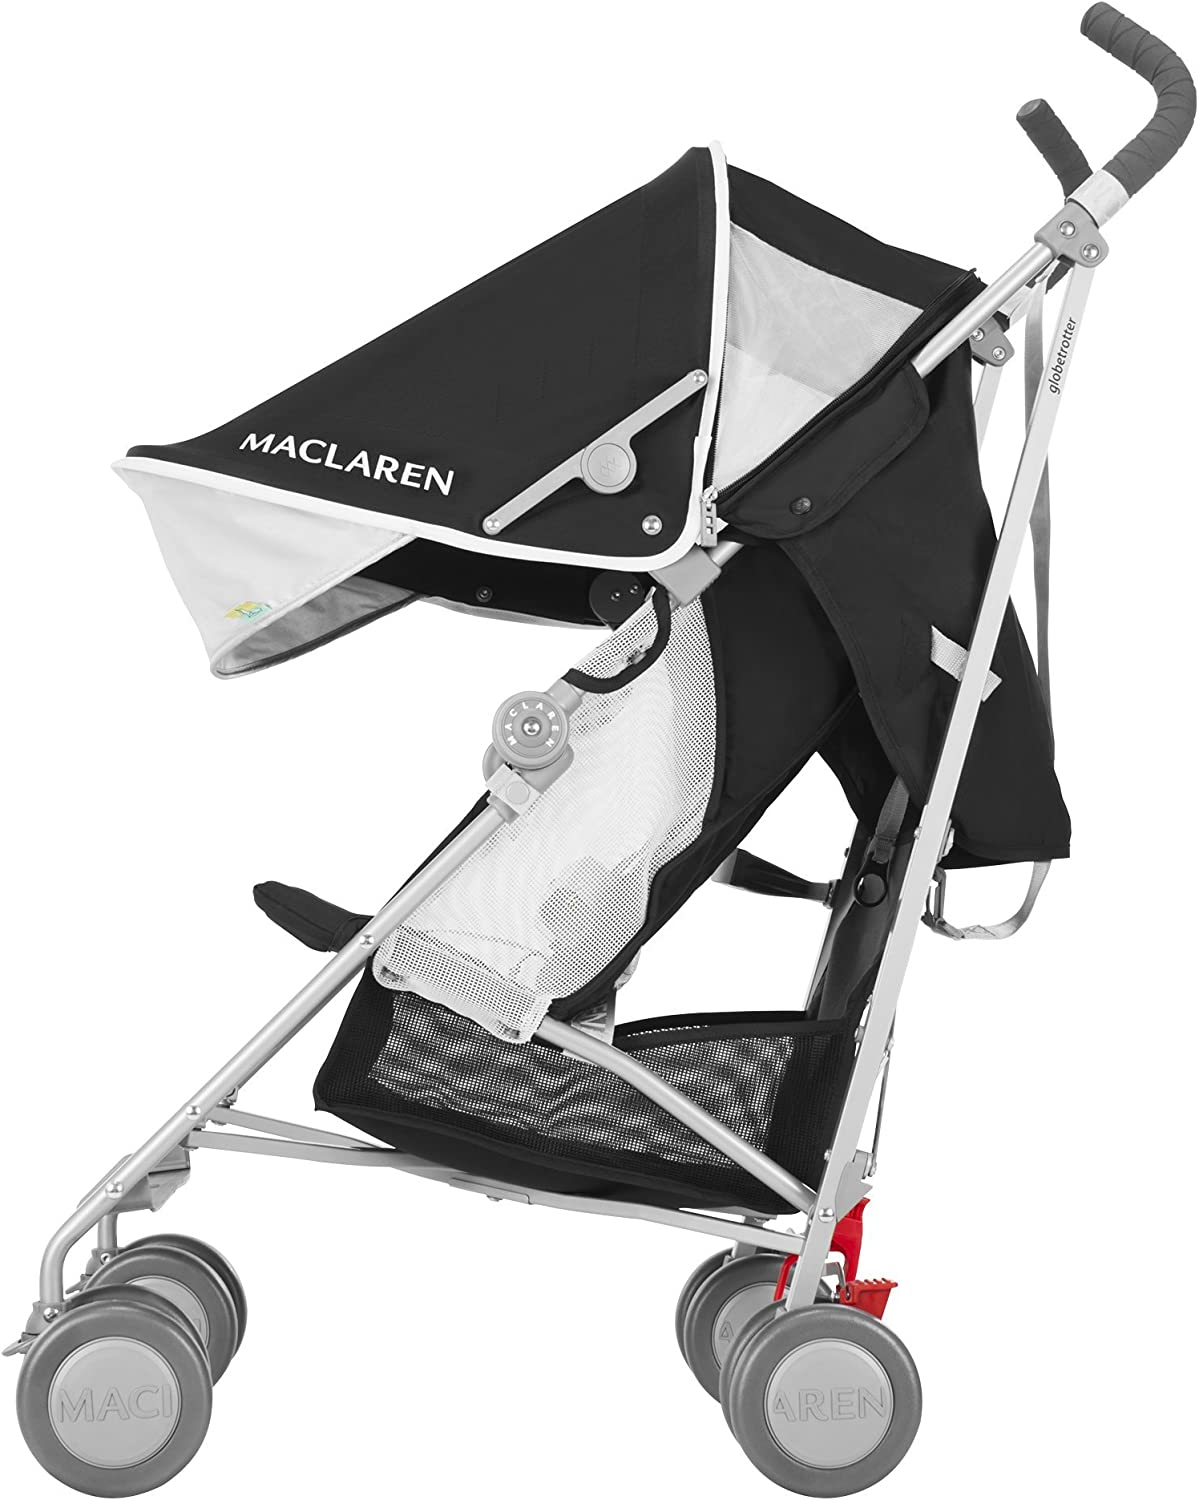 Maclaren Globetrotter - Silla de paseo, color negro/blanco: Amazon ...